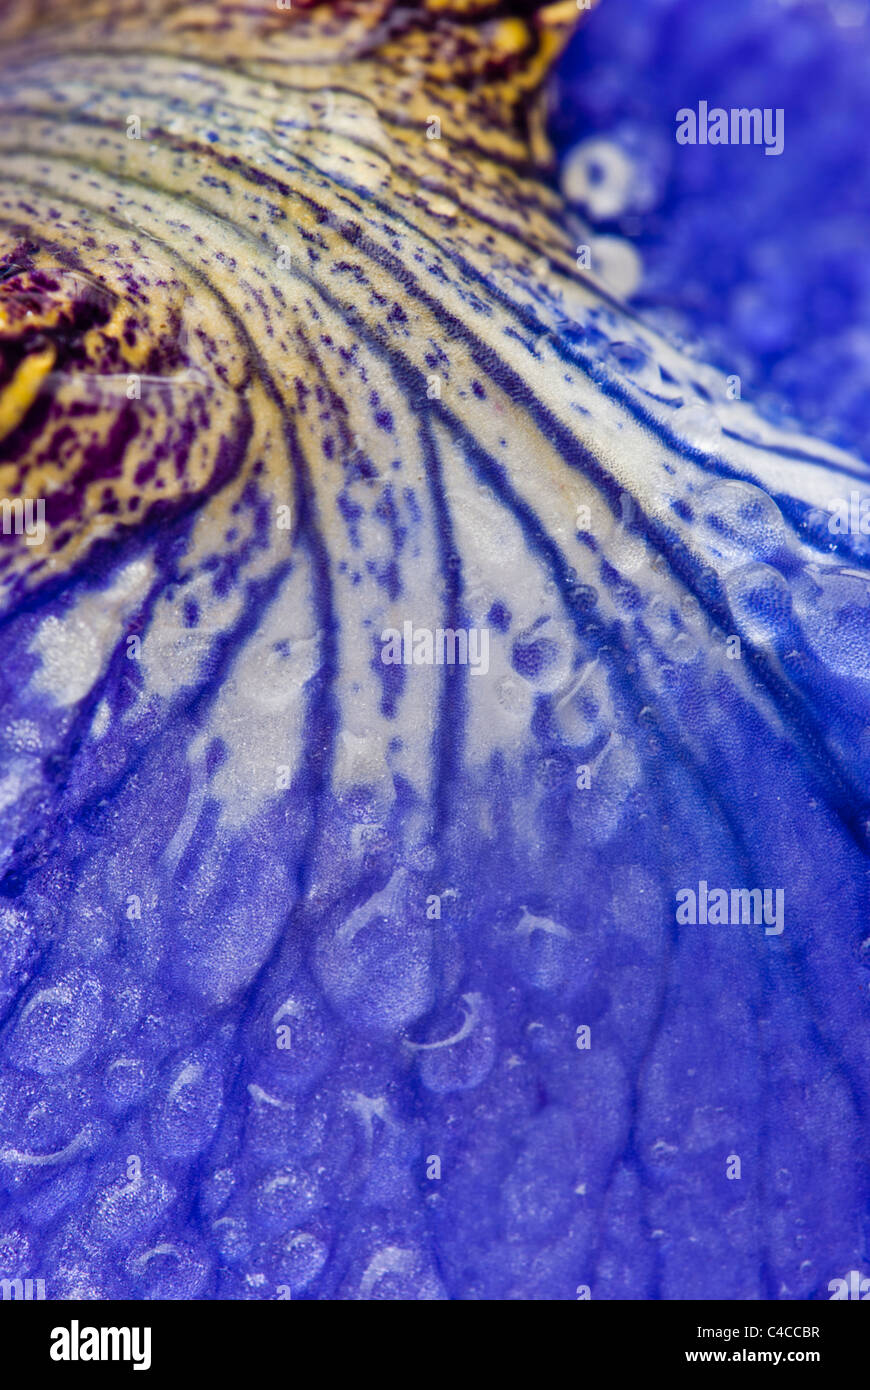 Close up of a blue water Iris (Iris sibirica) petal and water droplets. A pond marginal or bog garden plant. - Stock Image